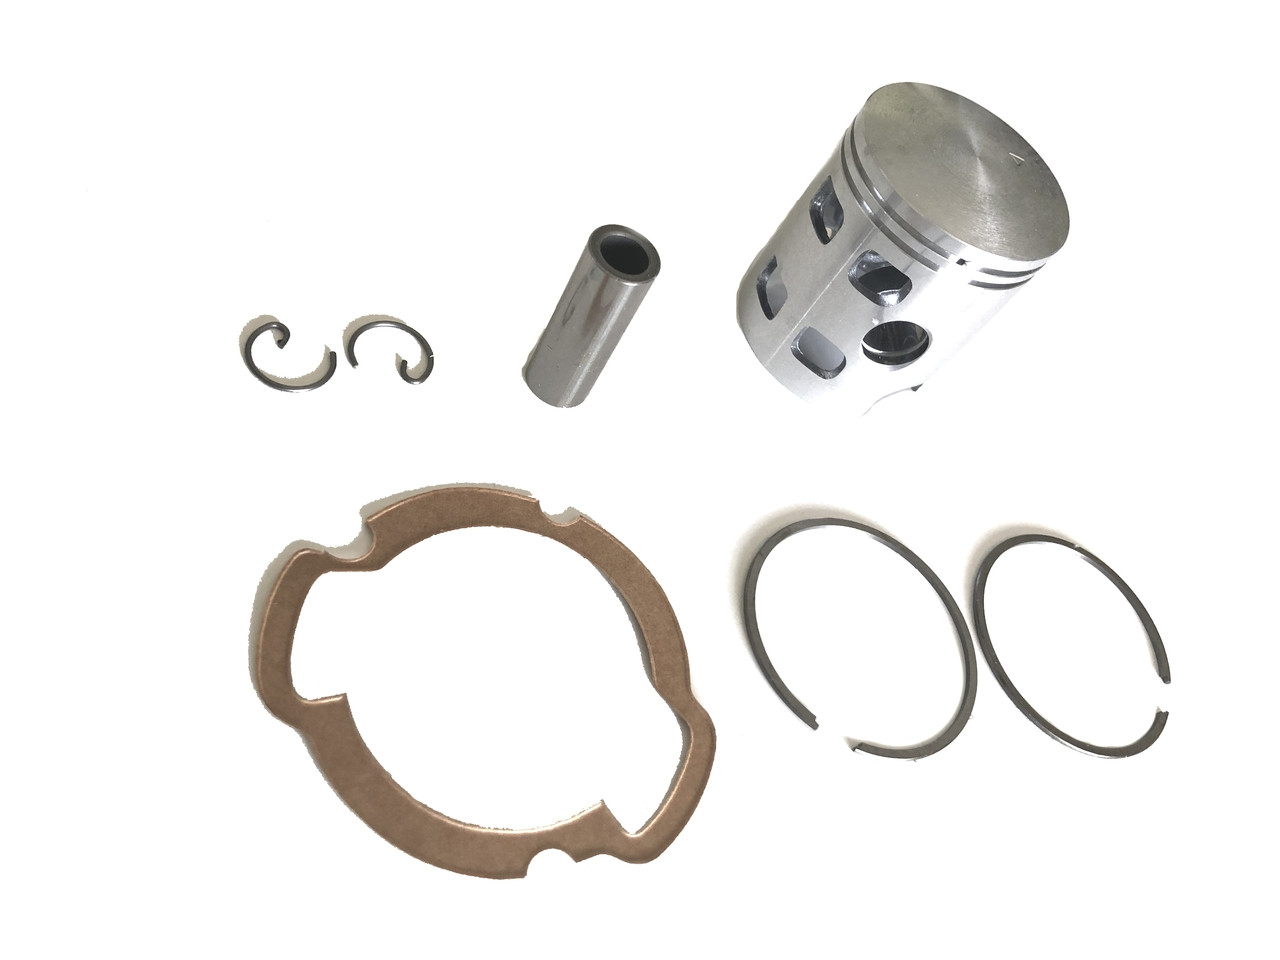 Piaggio Vespa Kinetic 43mm DR Cylinder Kit - 10mm Wrist Pin